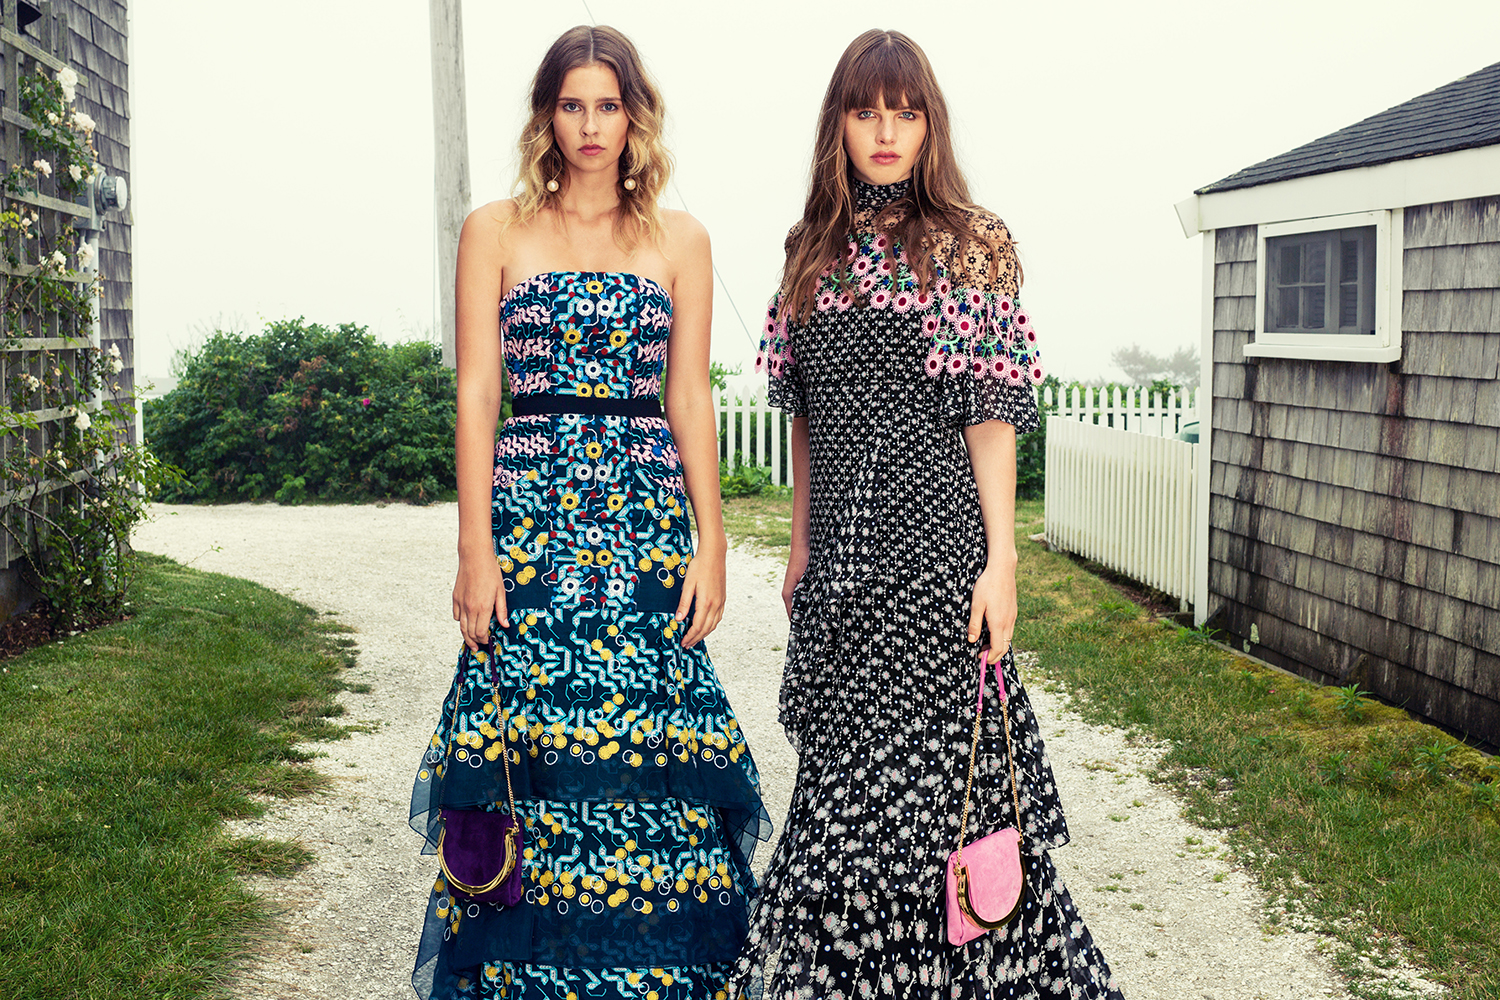 High-End Shopping In The Sharing Economy: Now We Can All Have Couture